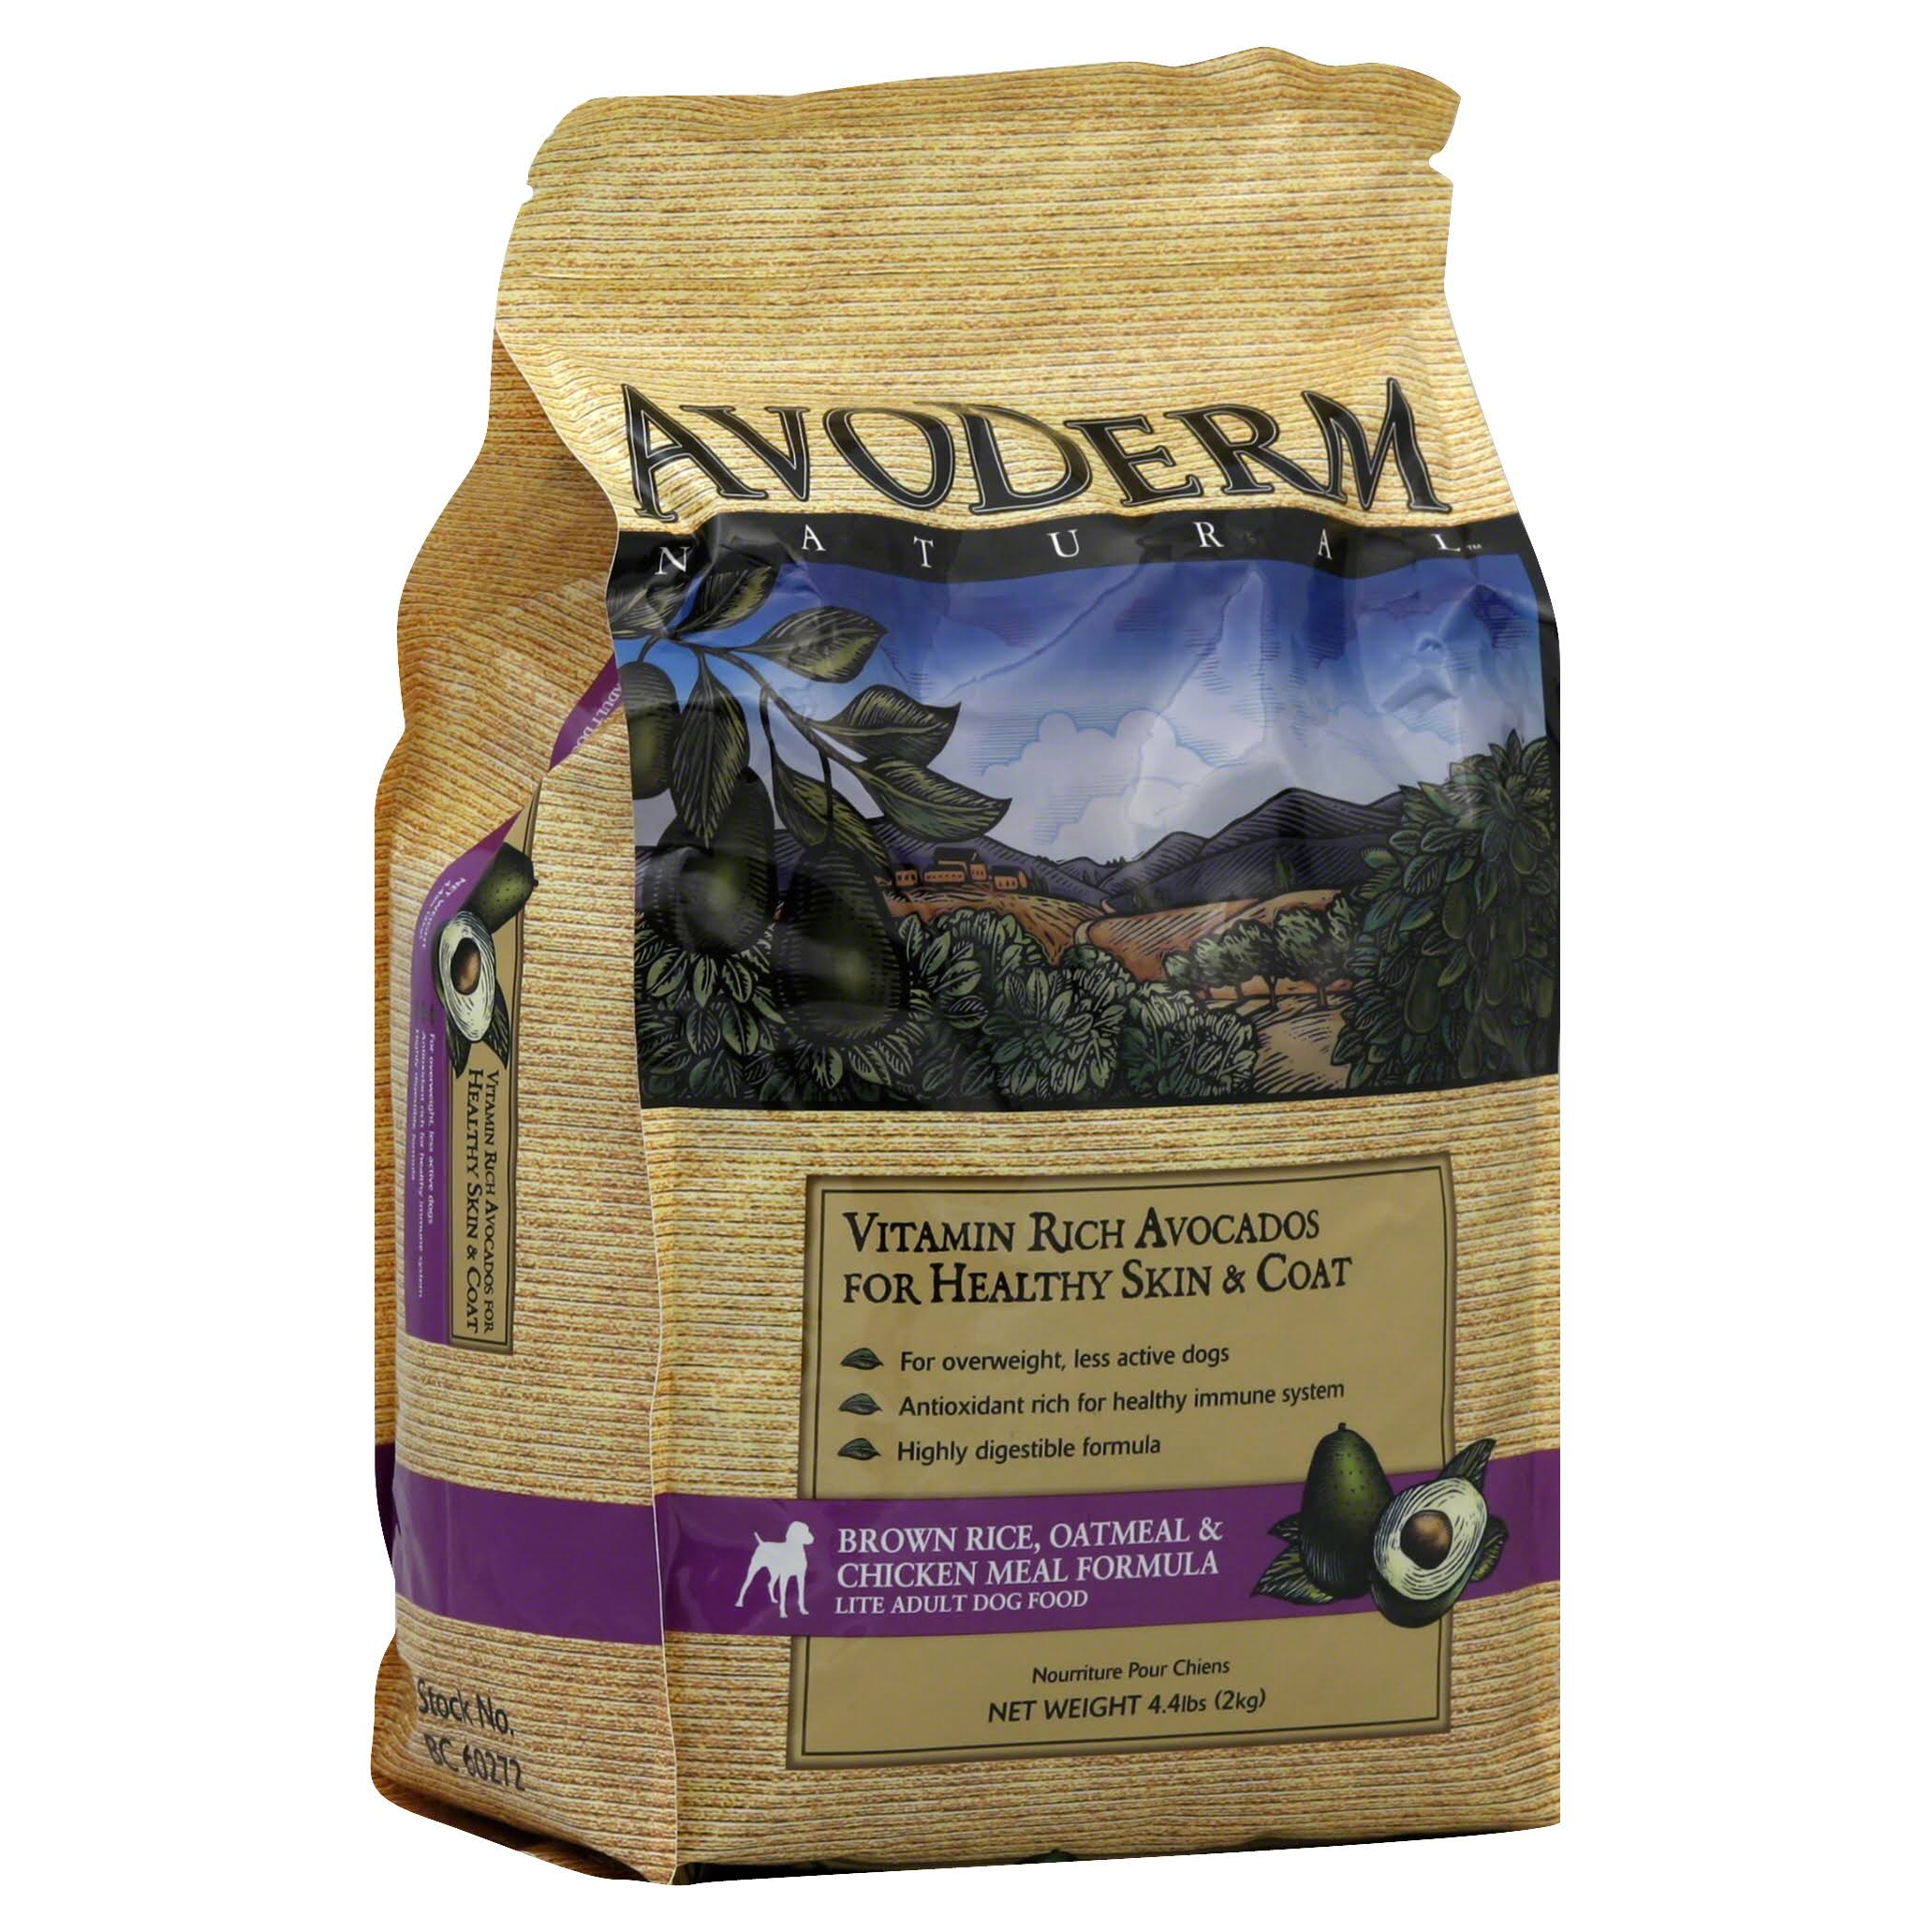 AvoDerm Natural Dog Food - Chicken Meal and Brown Rice, 4lb